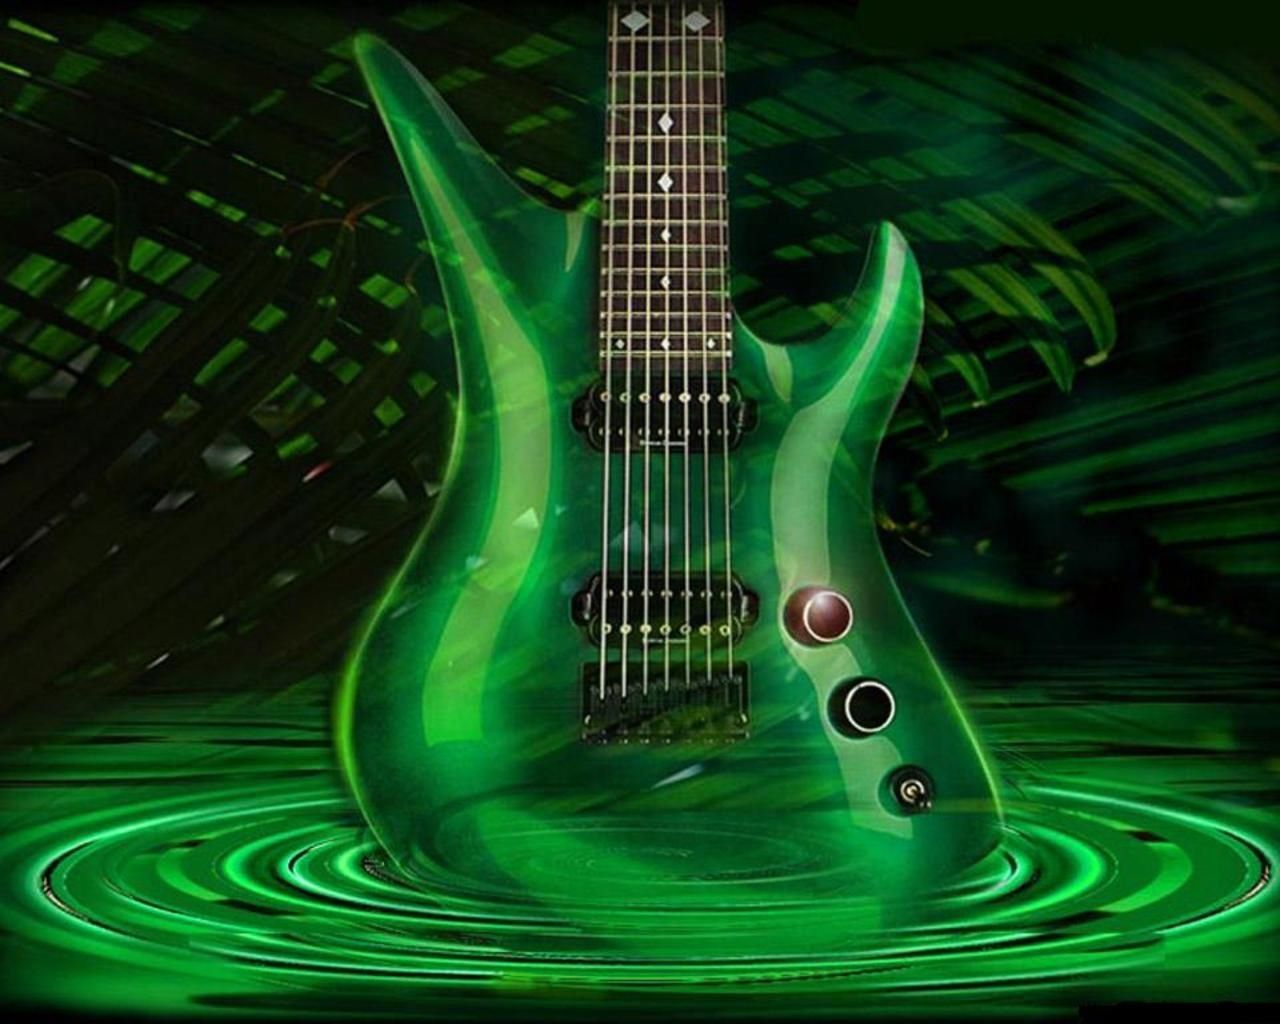 Acoustic Guitar Wallpapers High Definition Desktop Electric Guitar 1280 1024 3d Guitar Wallpapers 49 Wallpapers Ador Electric Guitar Guitar Music Wallpaper